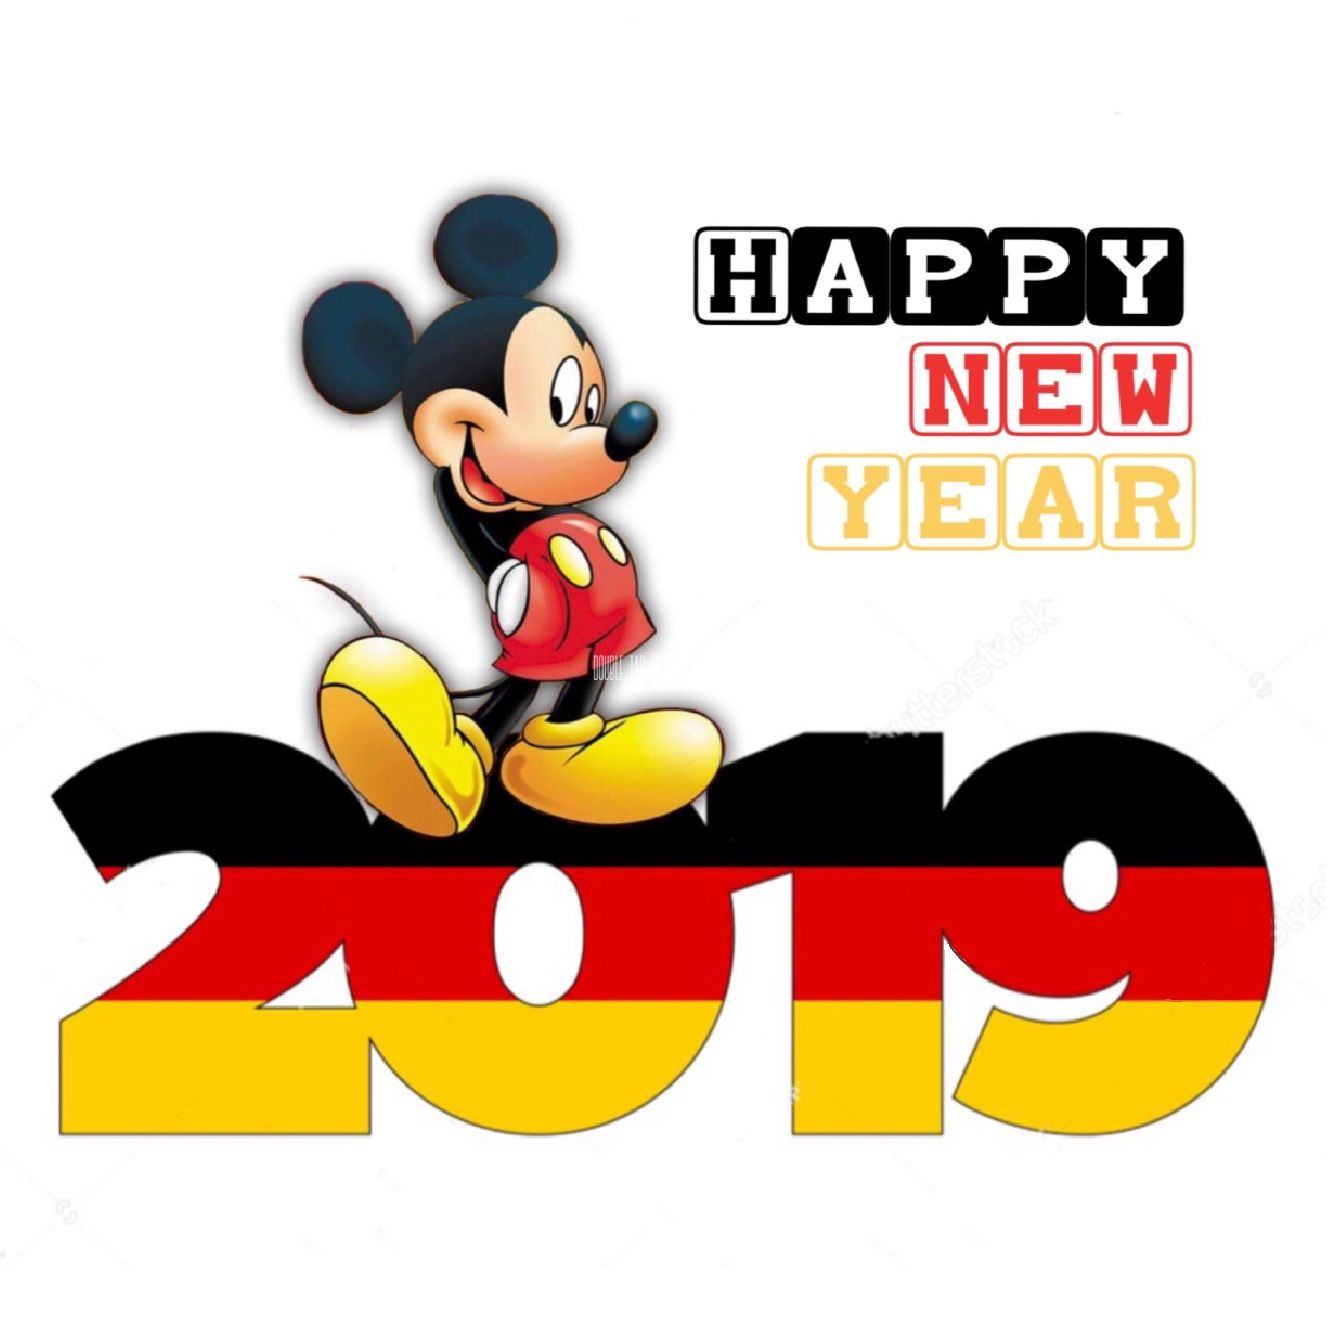 Happy new year 2019 mickey mouse Mickey mouse, Happy new